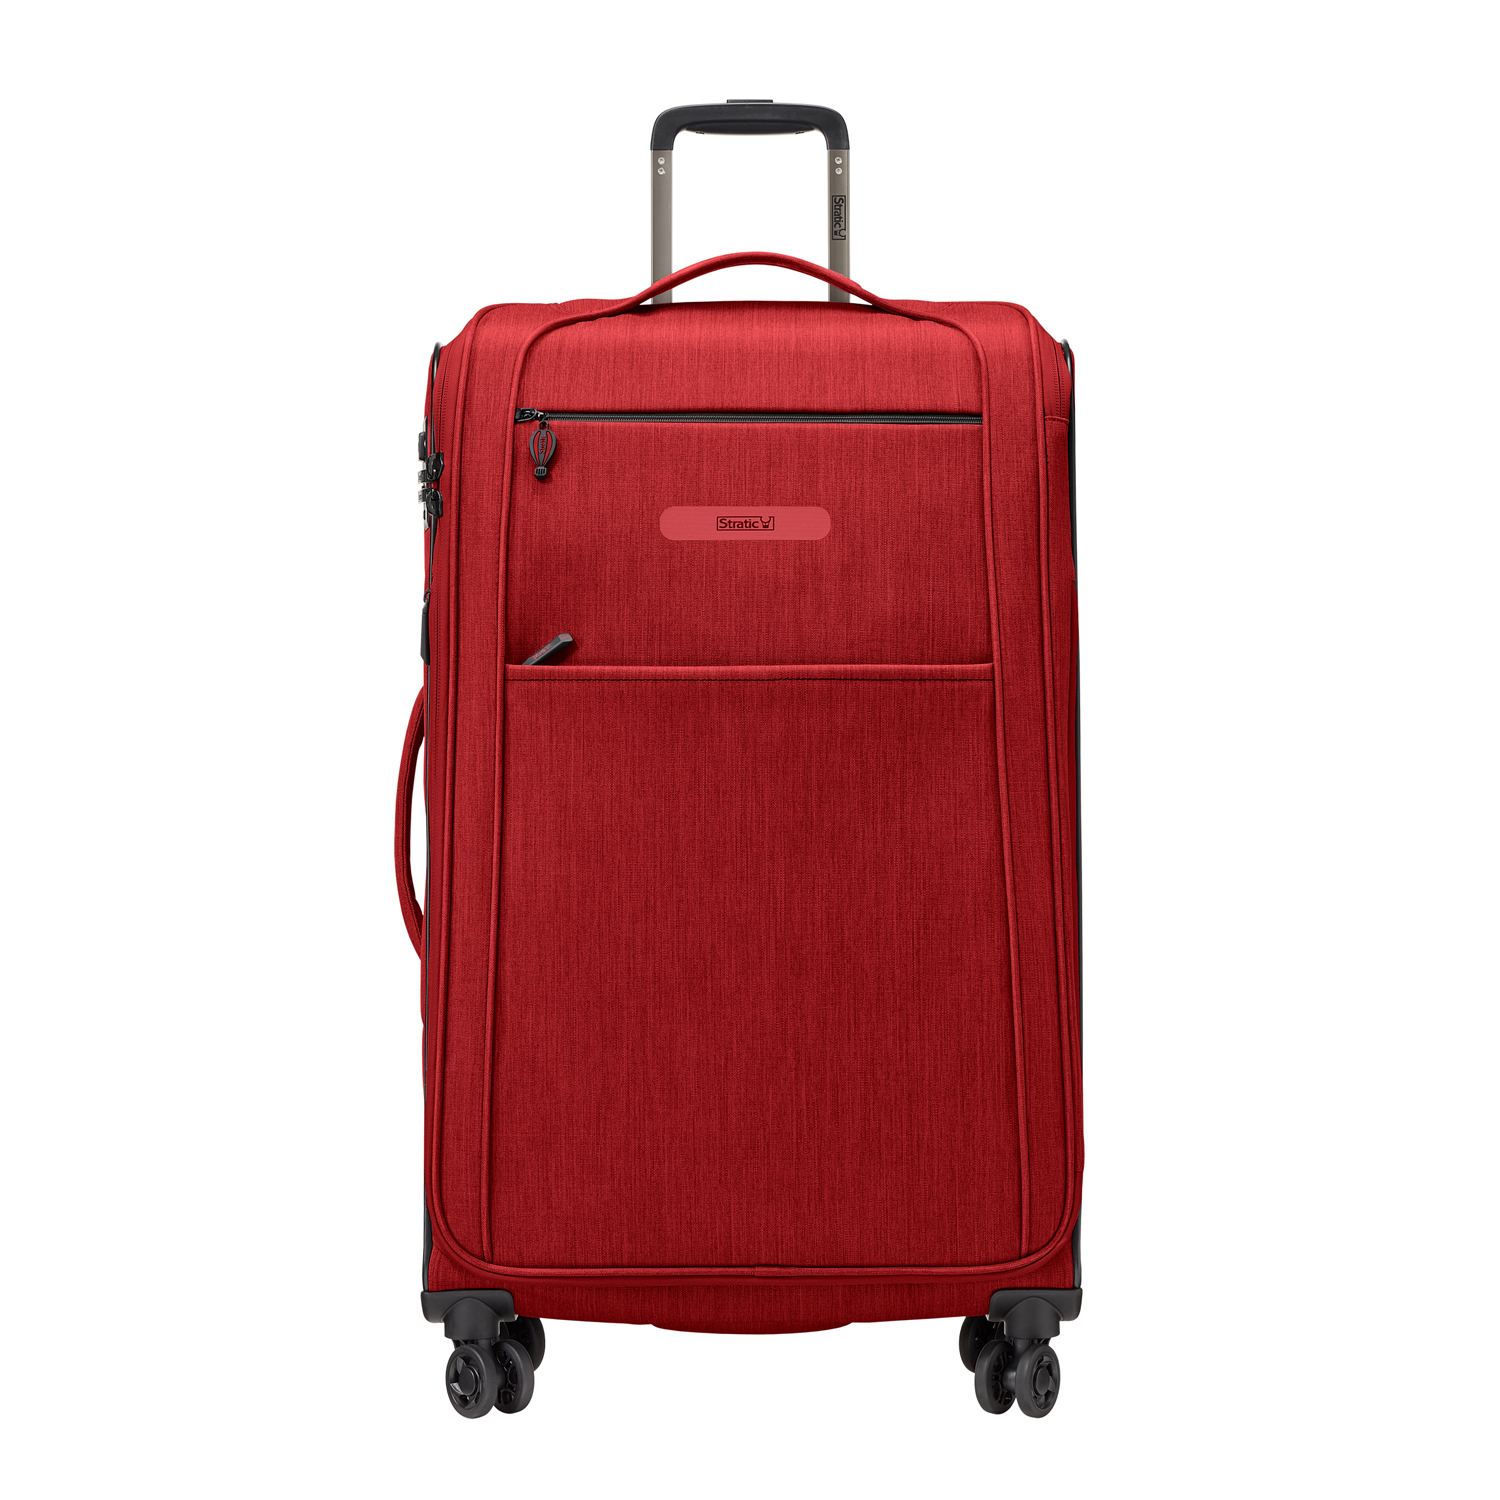 Stratic Floating Koffer Trolley Red 75cm